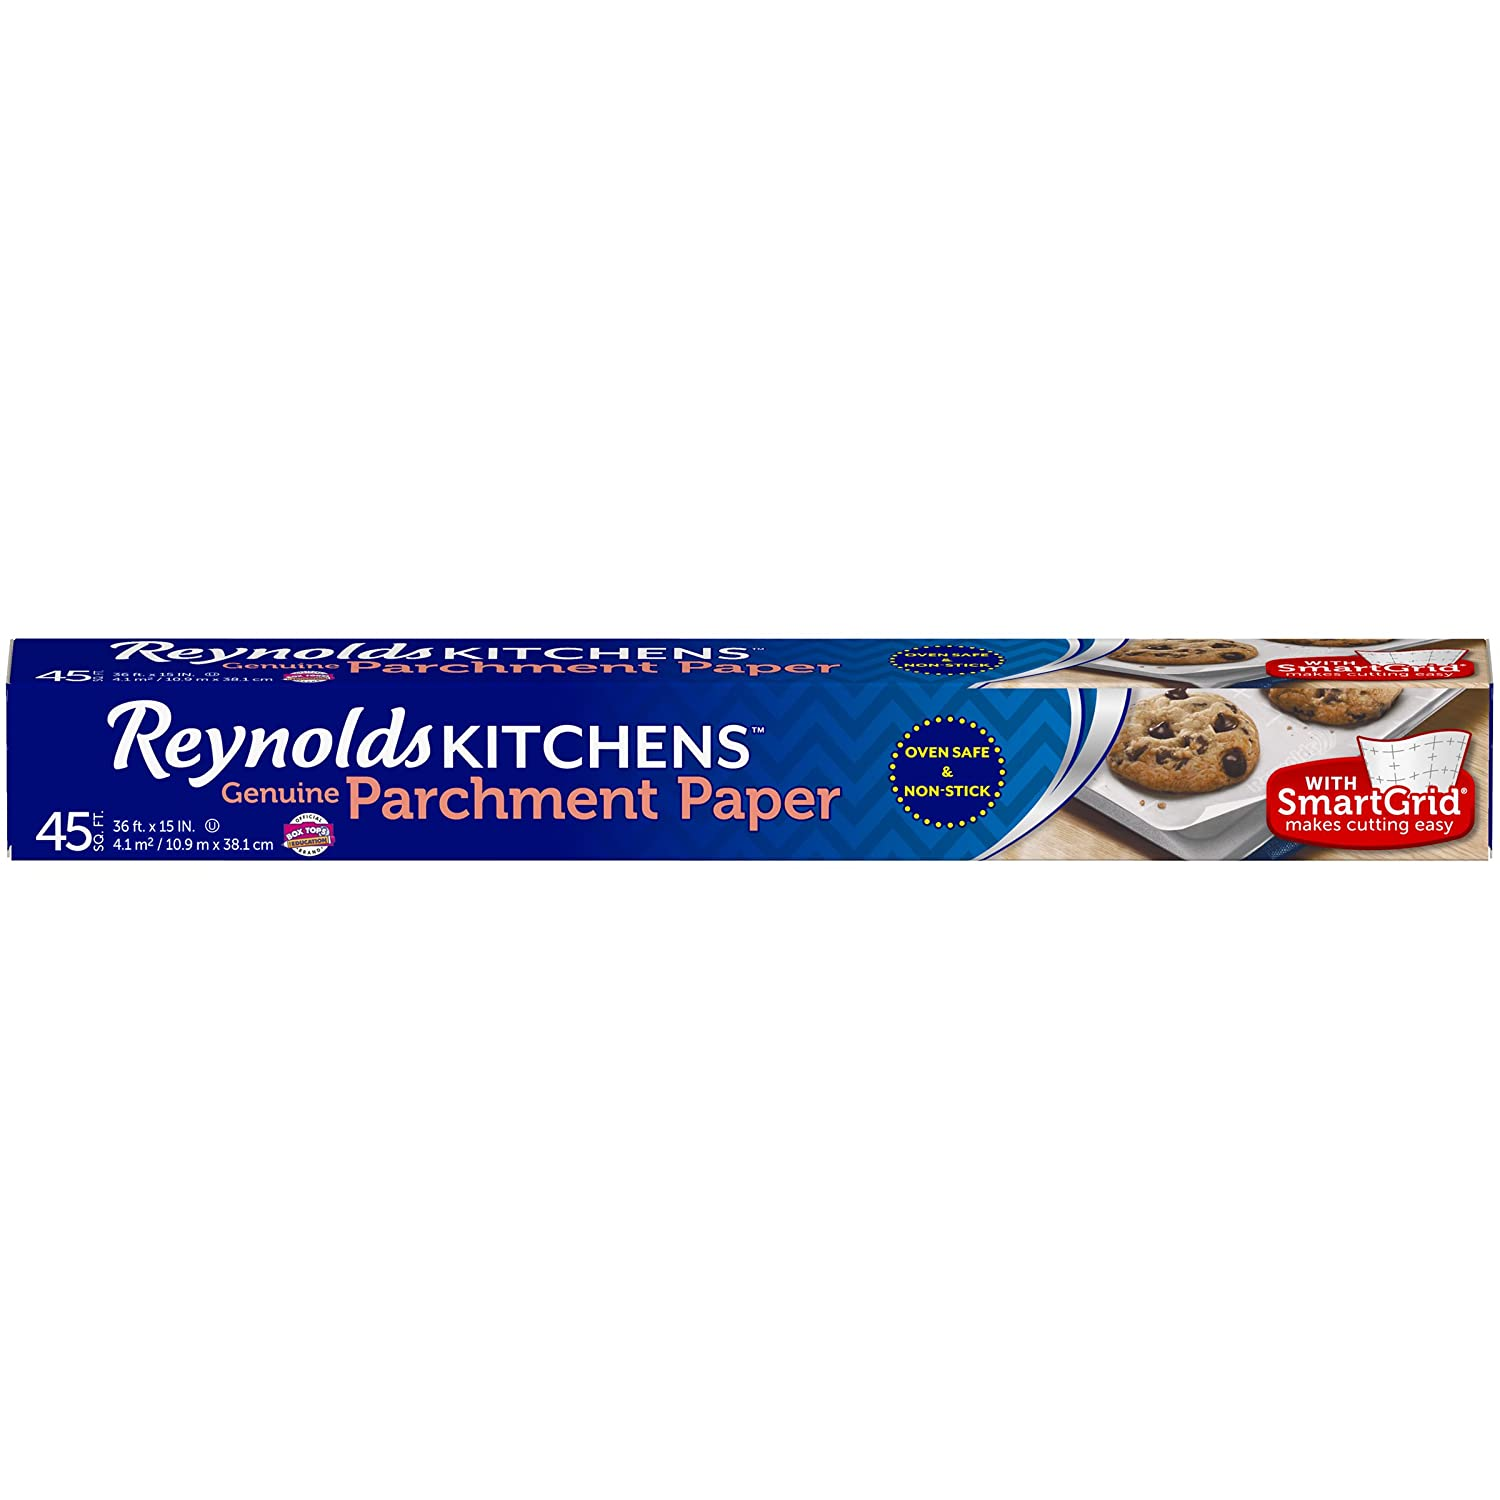 Beautiful Amazon.com: Reynolds Kitchens Parchment Paper (Smart Grid, Non Stick, 45  Square Foot Roll): Health U0026 Personal Care